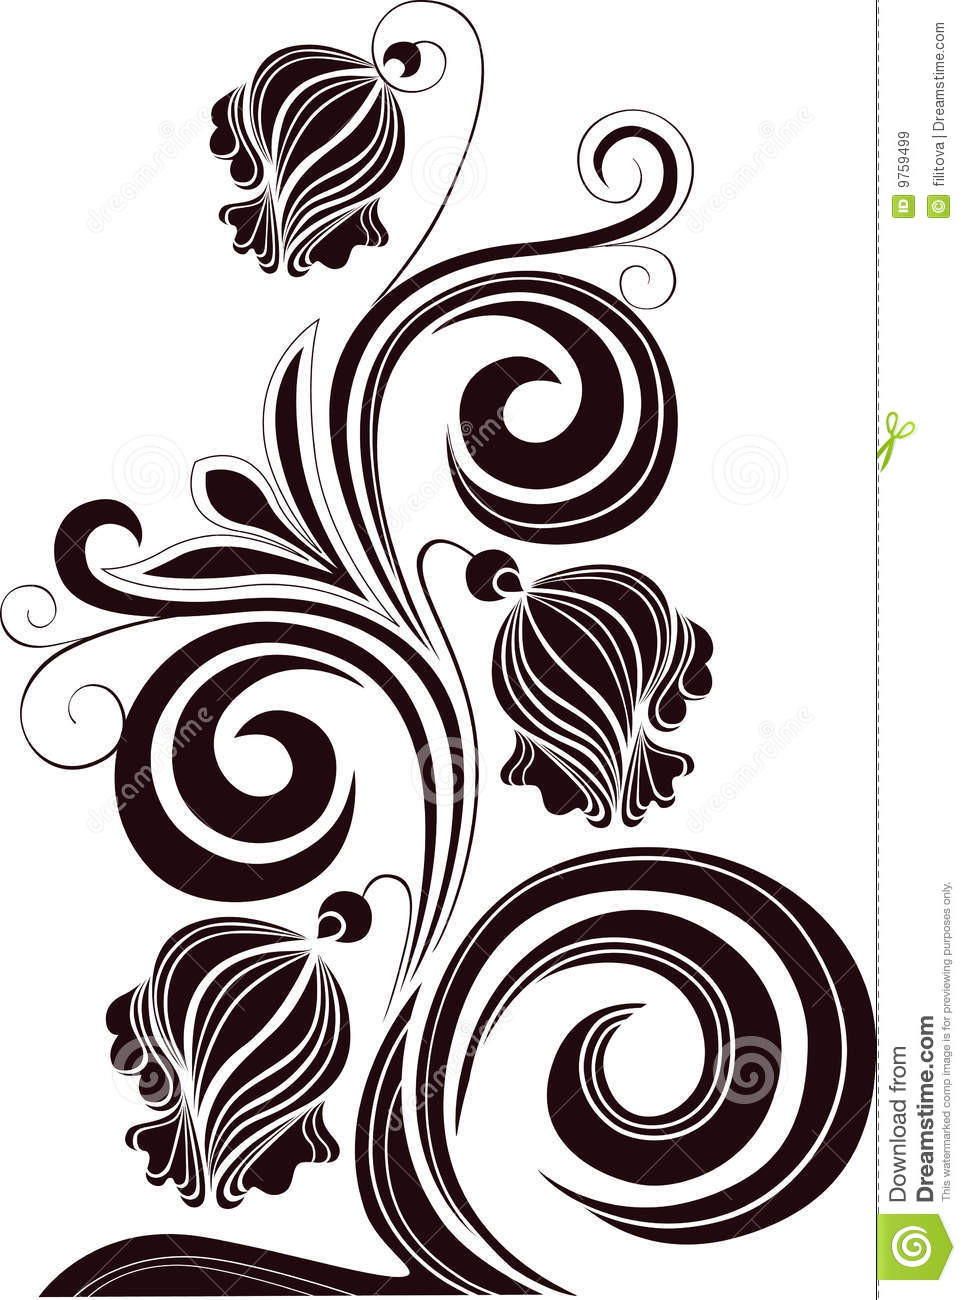 decorative flowers on a white background royalty free stock images - Decorative Flowers